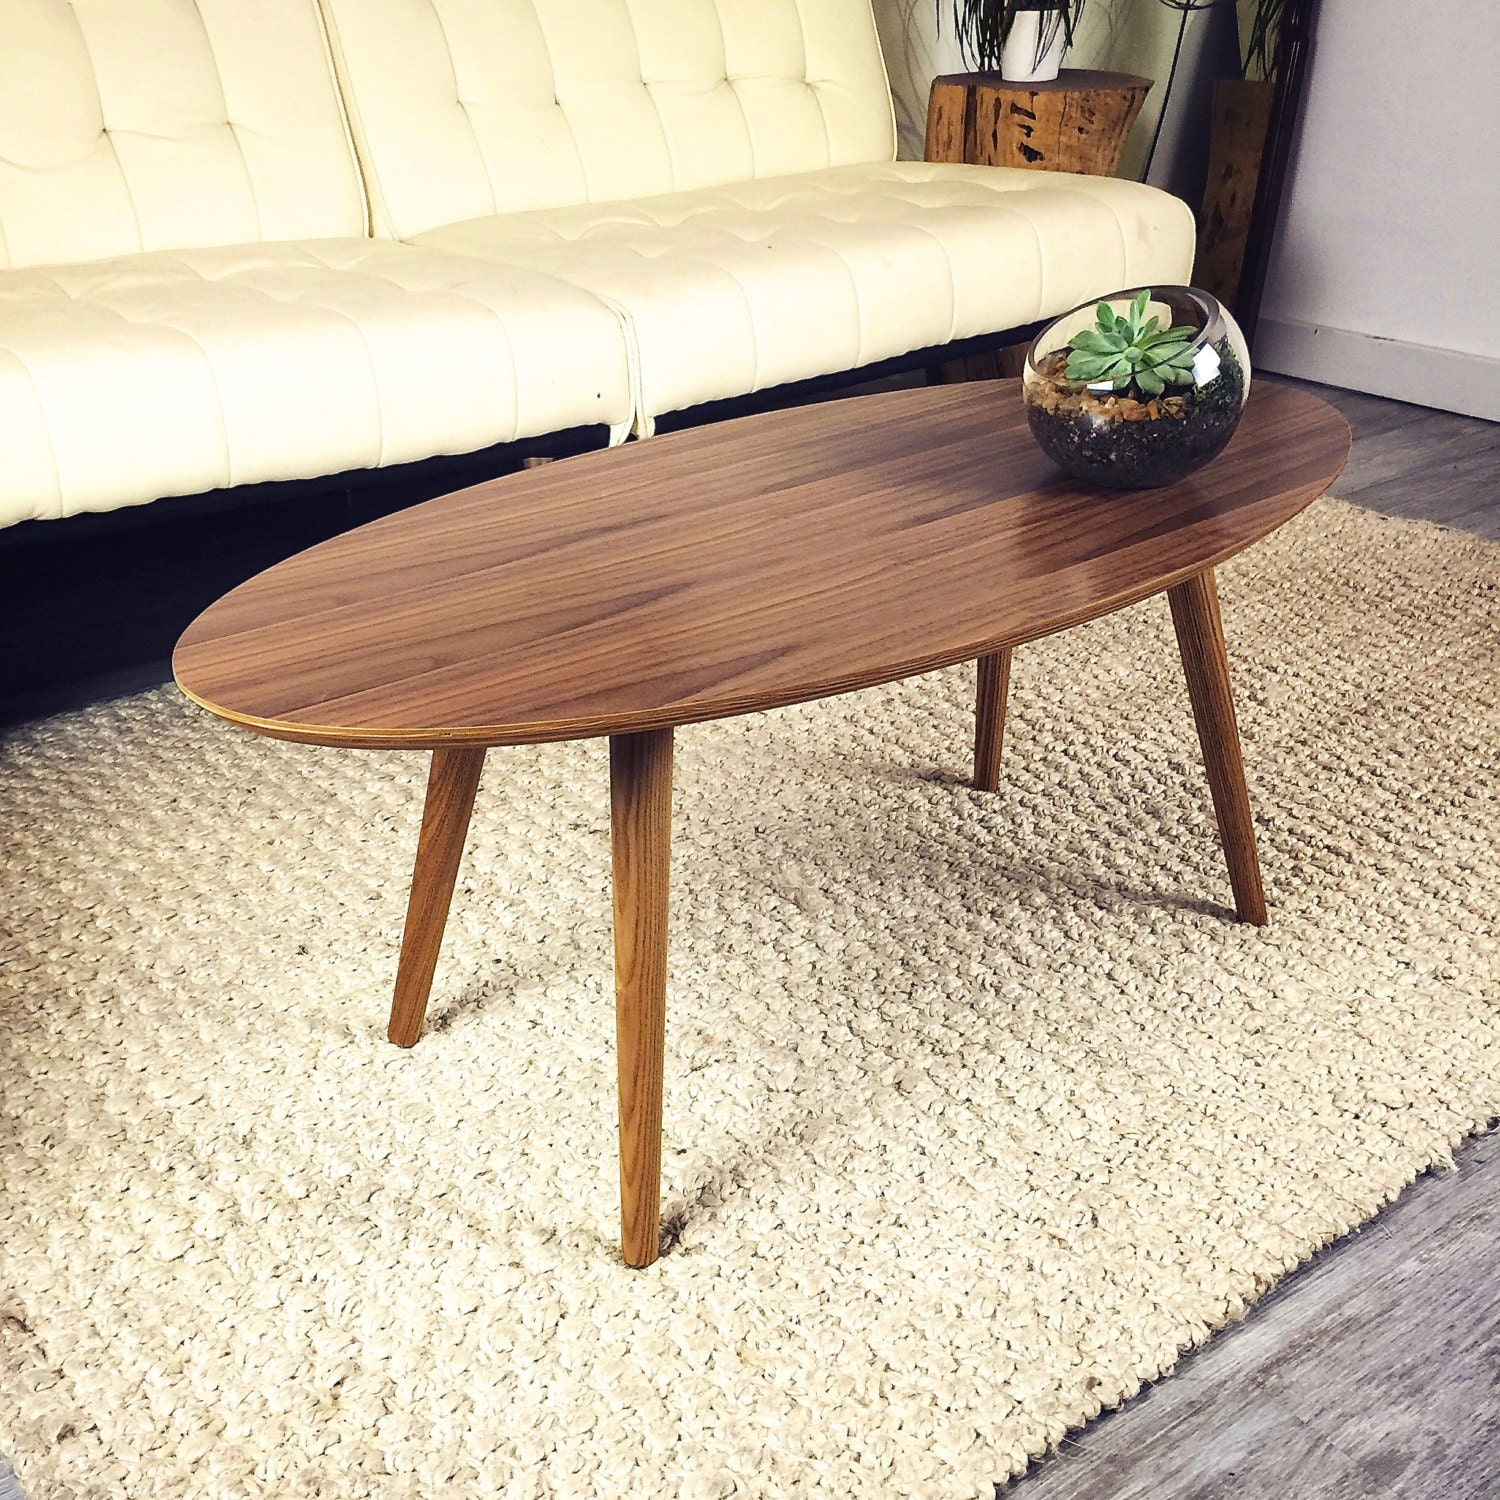 Valencia Walnut Surfboard Coffee Table By Jeremiahcollection